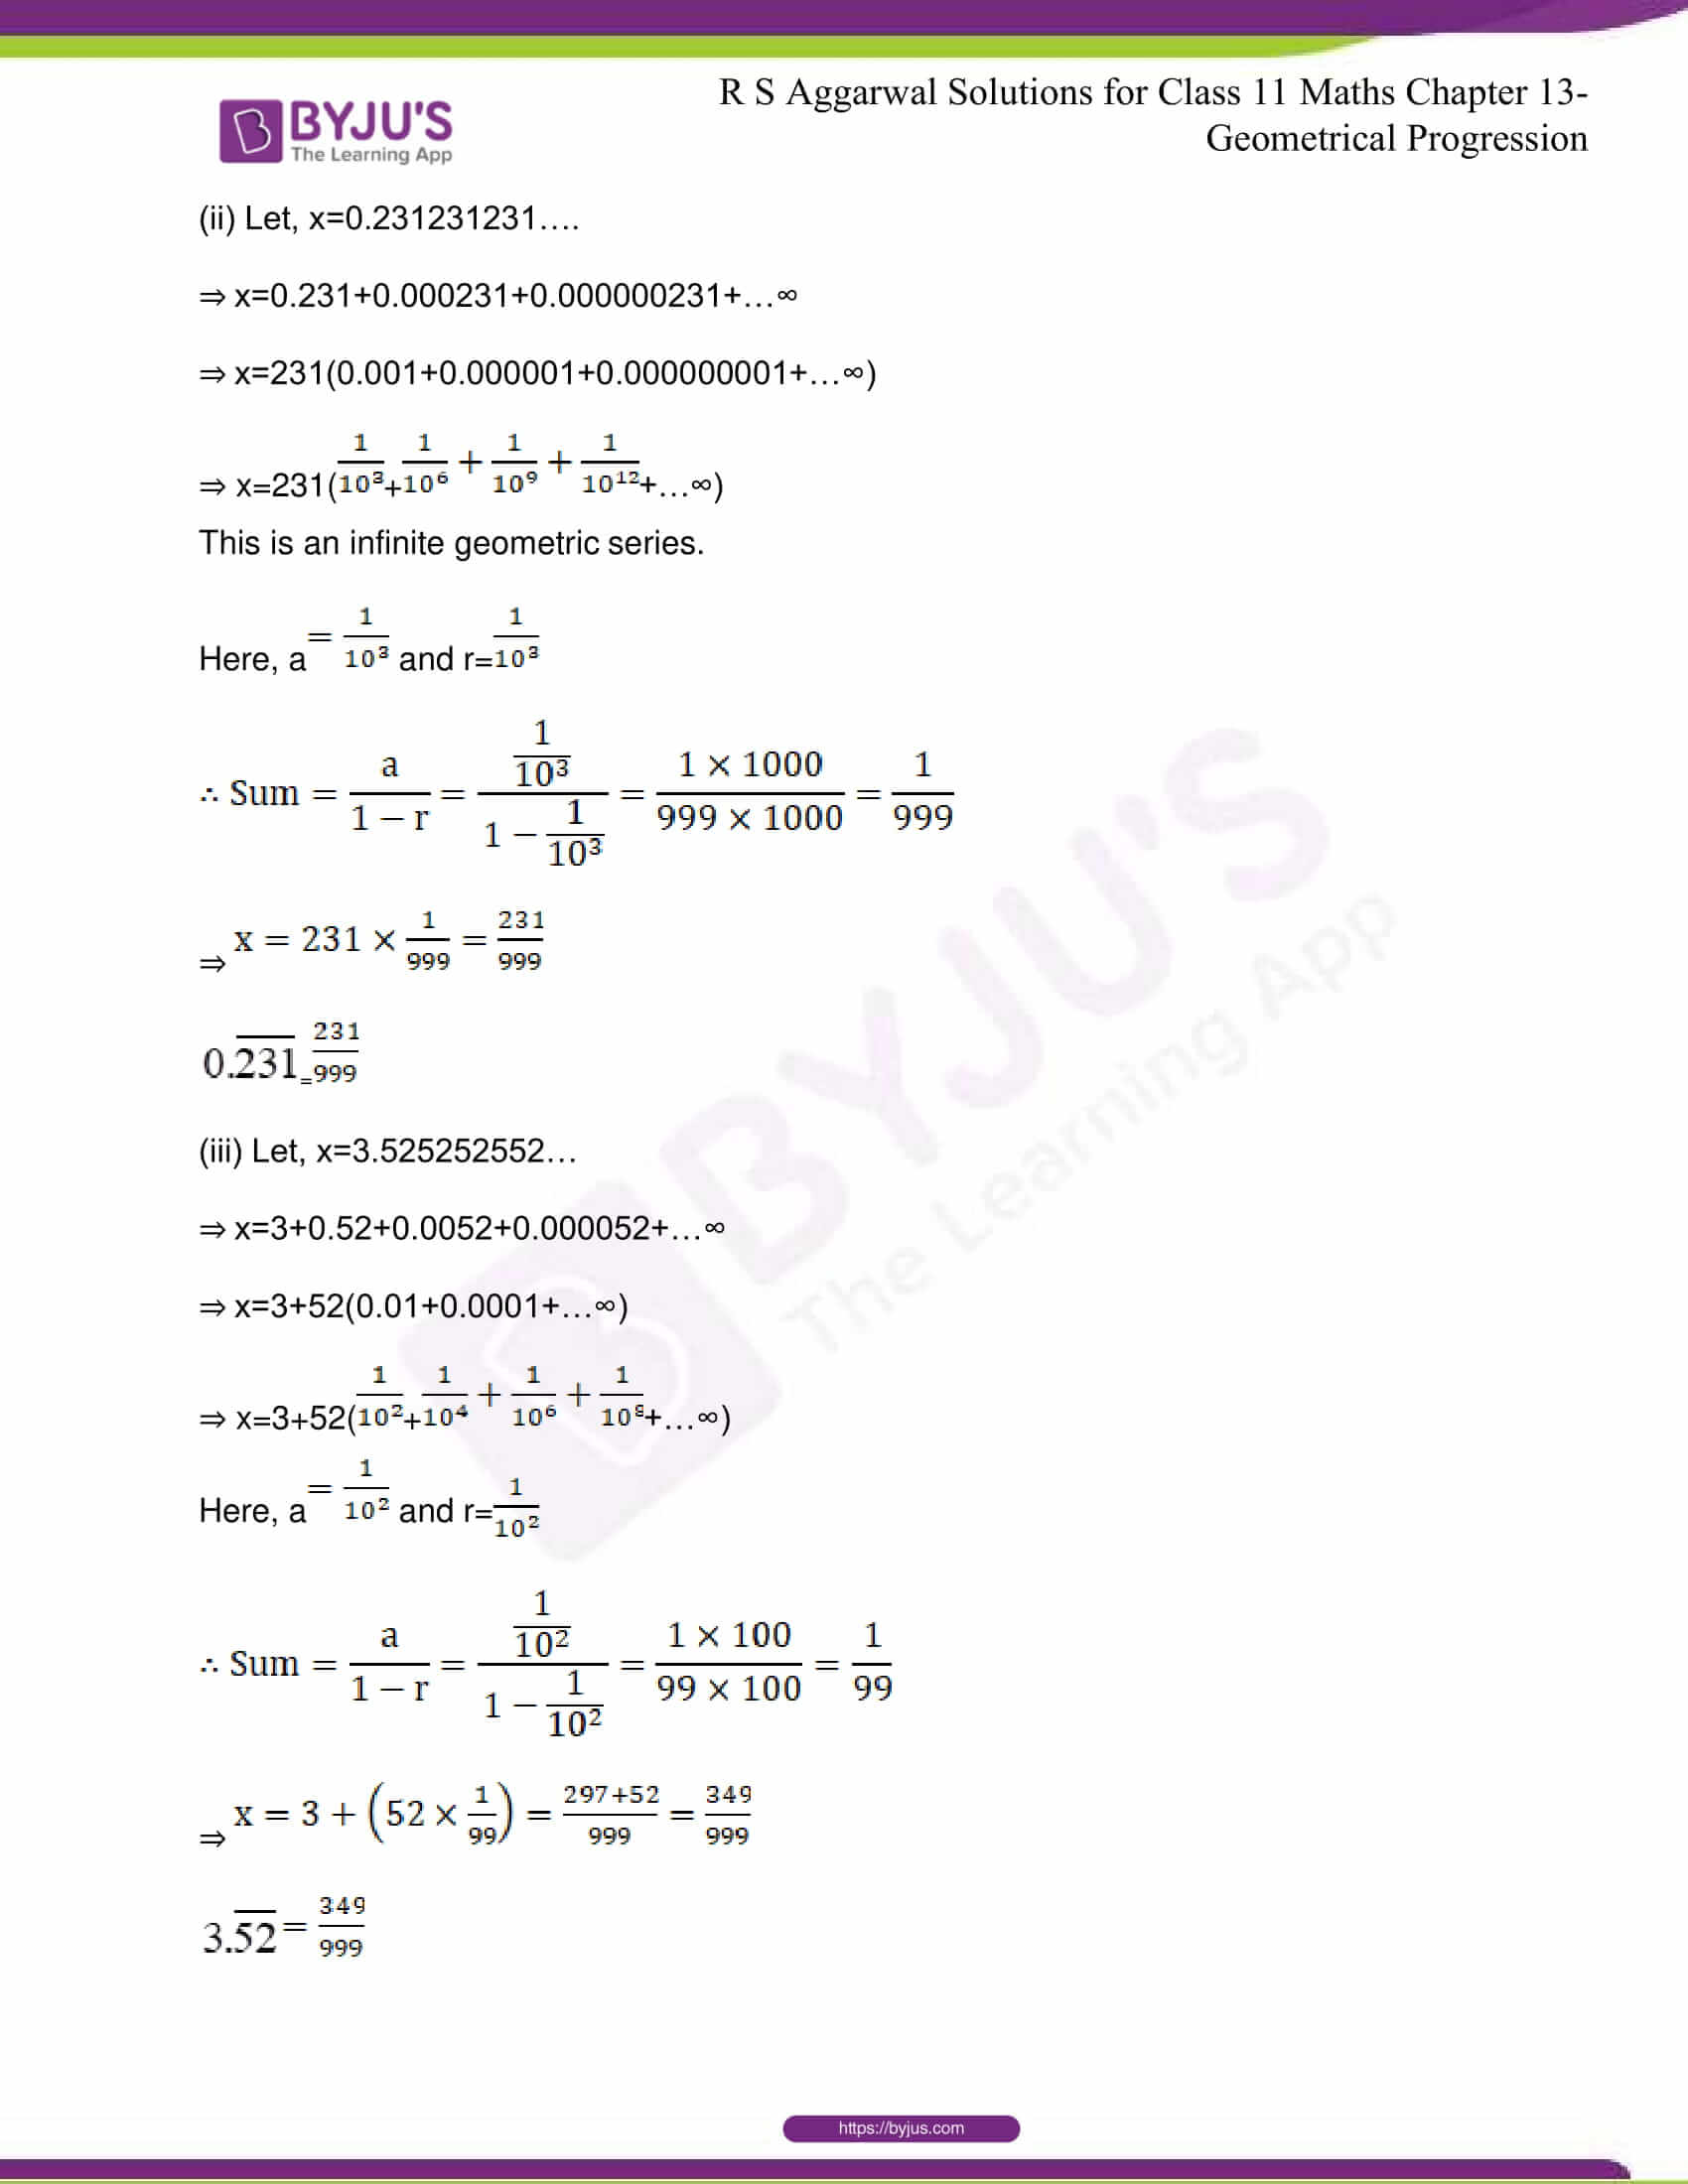 RS Aggarwal Sol Class 11 Maths Chapter 12